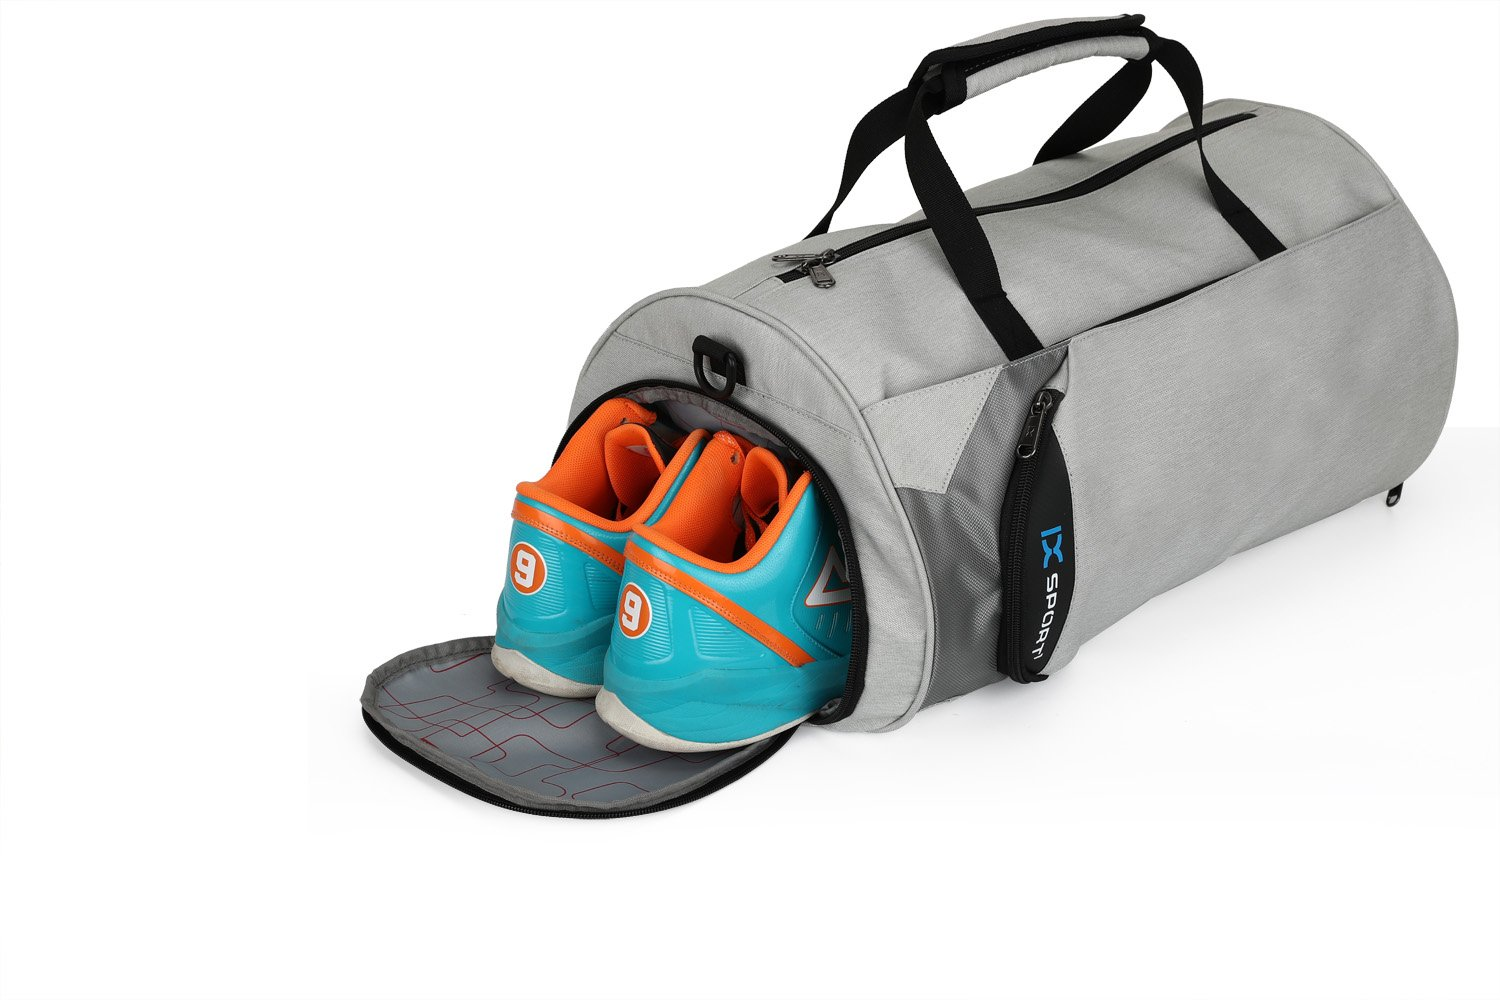 f9d2bb2f337 INOXTO Fitness Sport Small Gym Bag with Shoes Compartment Waterproof ...